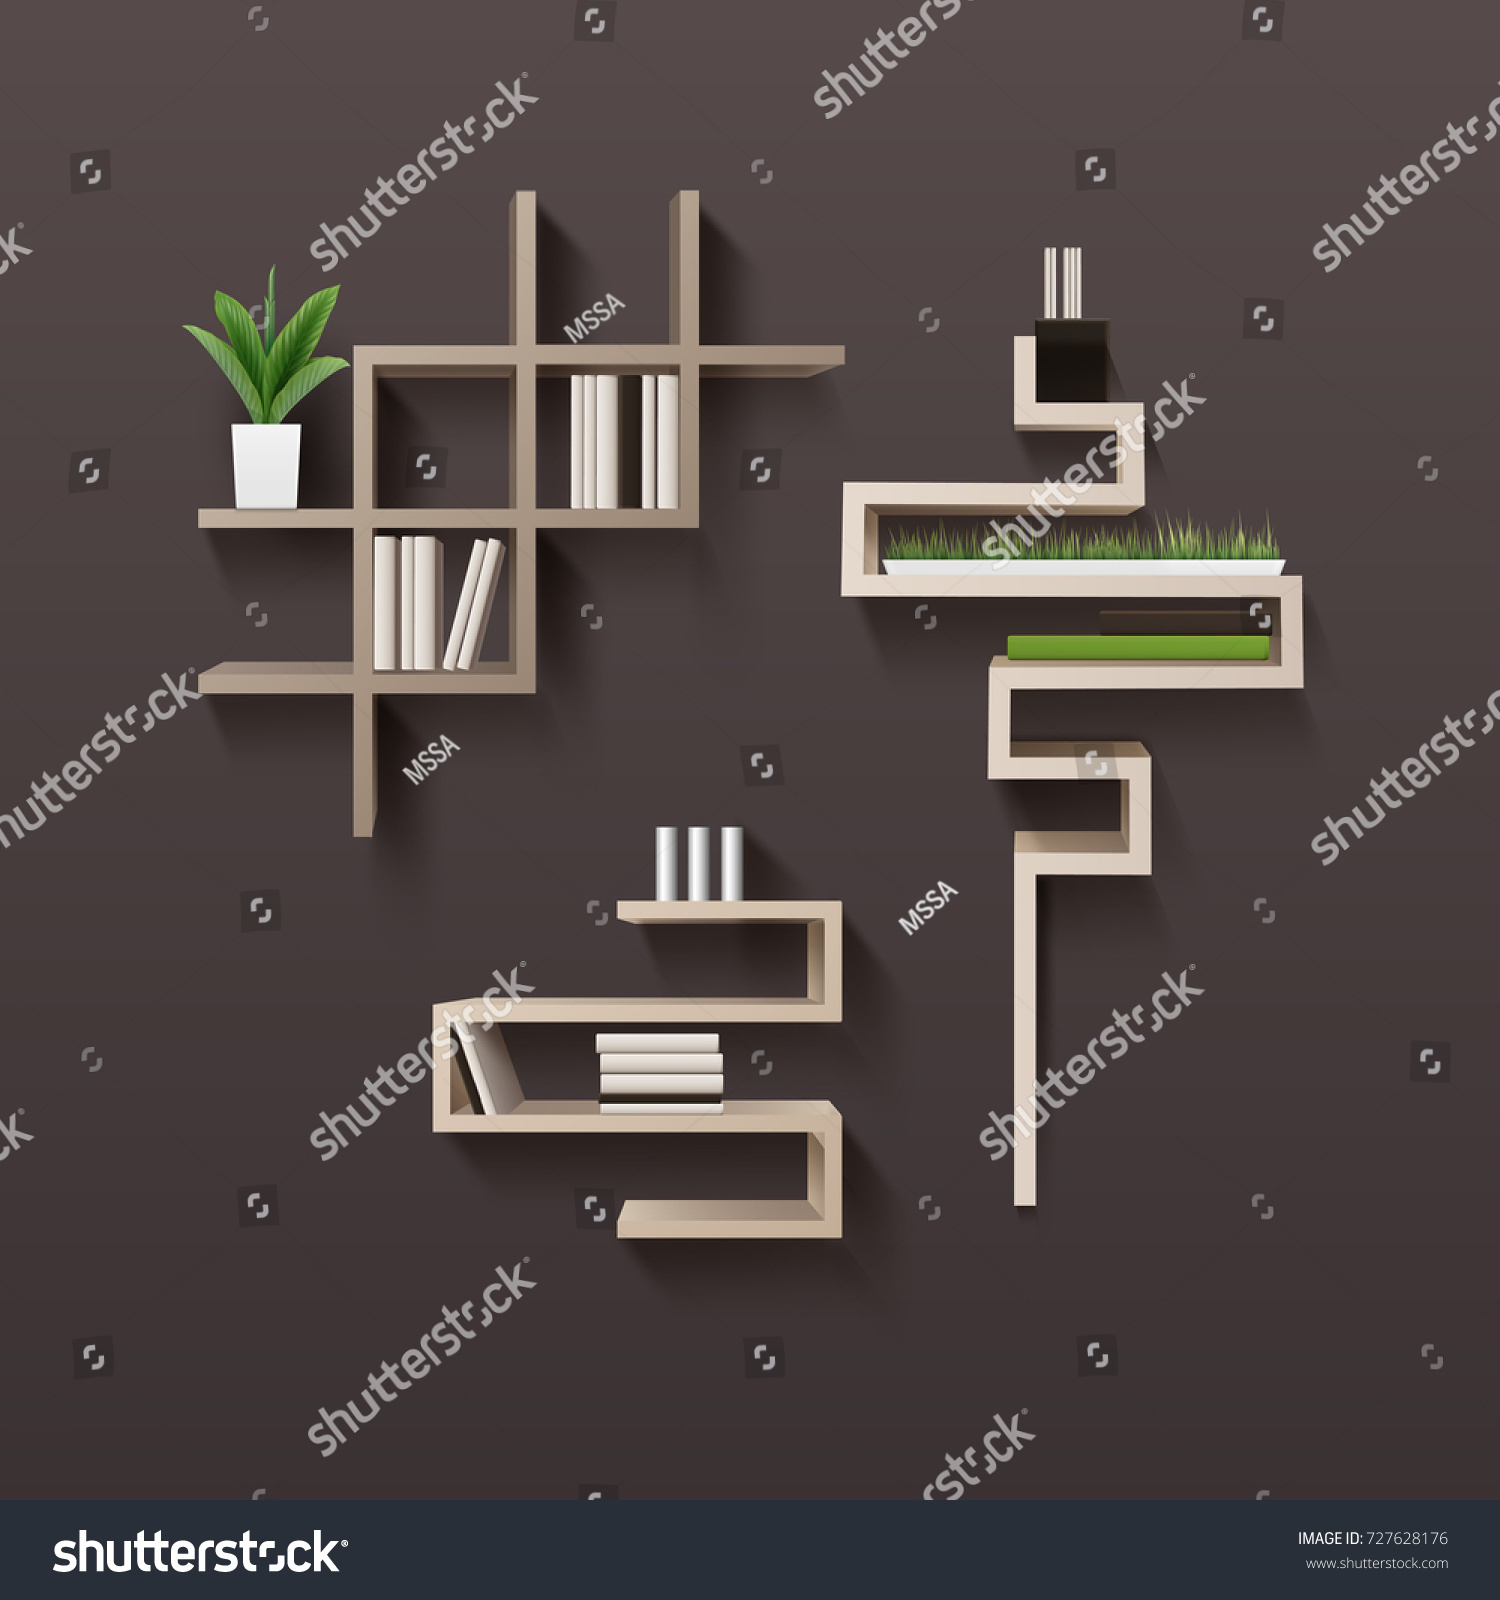 Interior wooden shelves free vector - Vector Modern Wooden Bookshelf With Books And Plants In Interior Isolated On Brown Wall Background